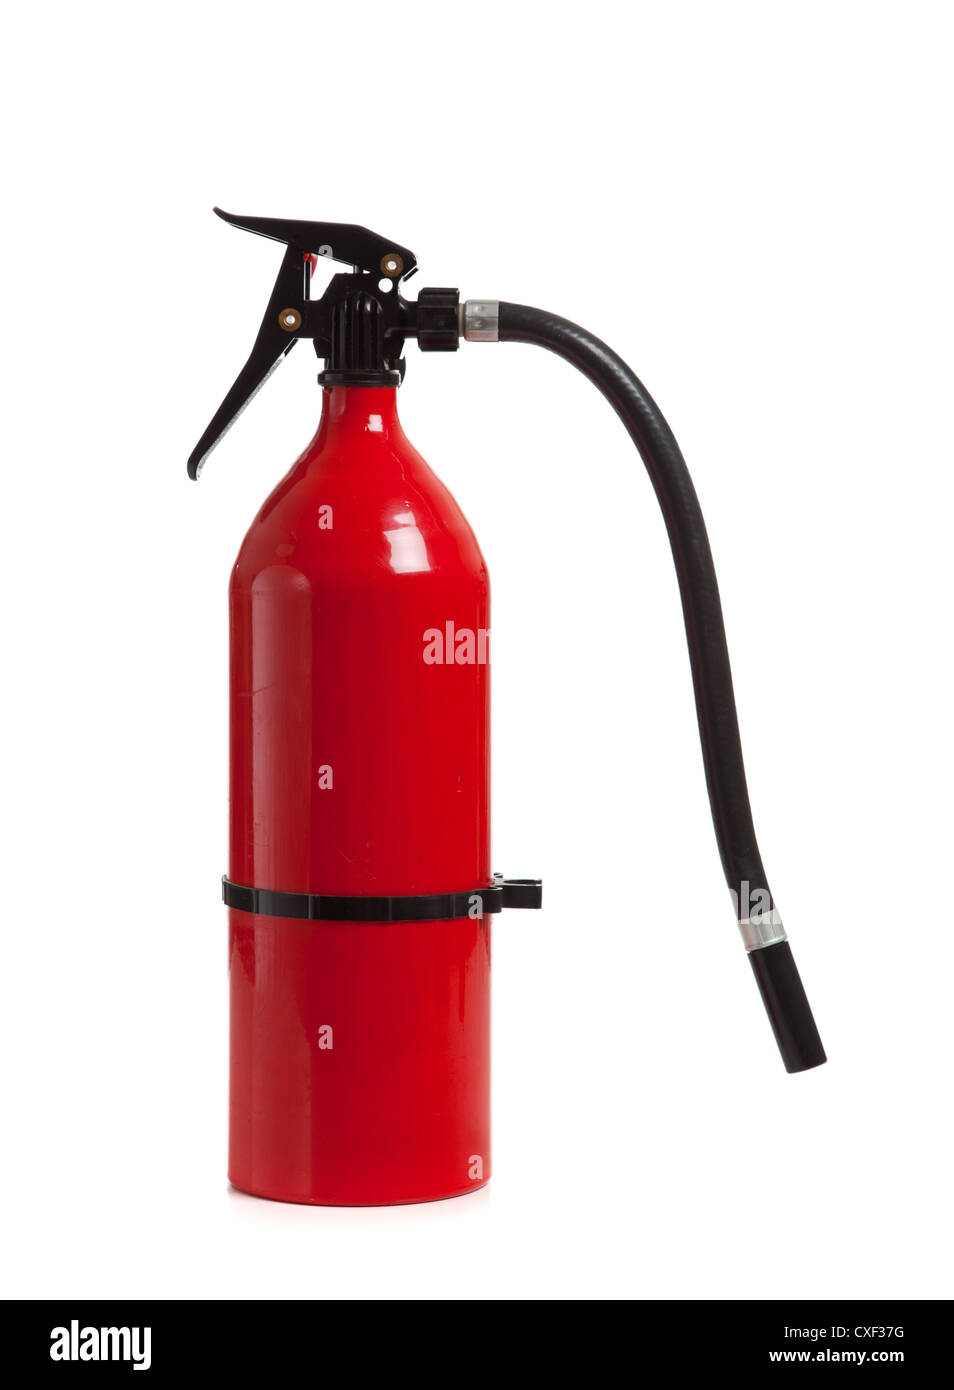 Red fire extinguisher on a white background - Stock Image